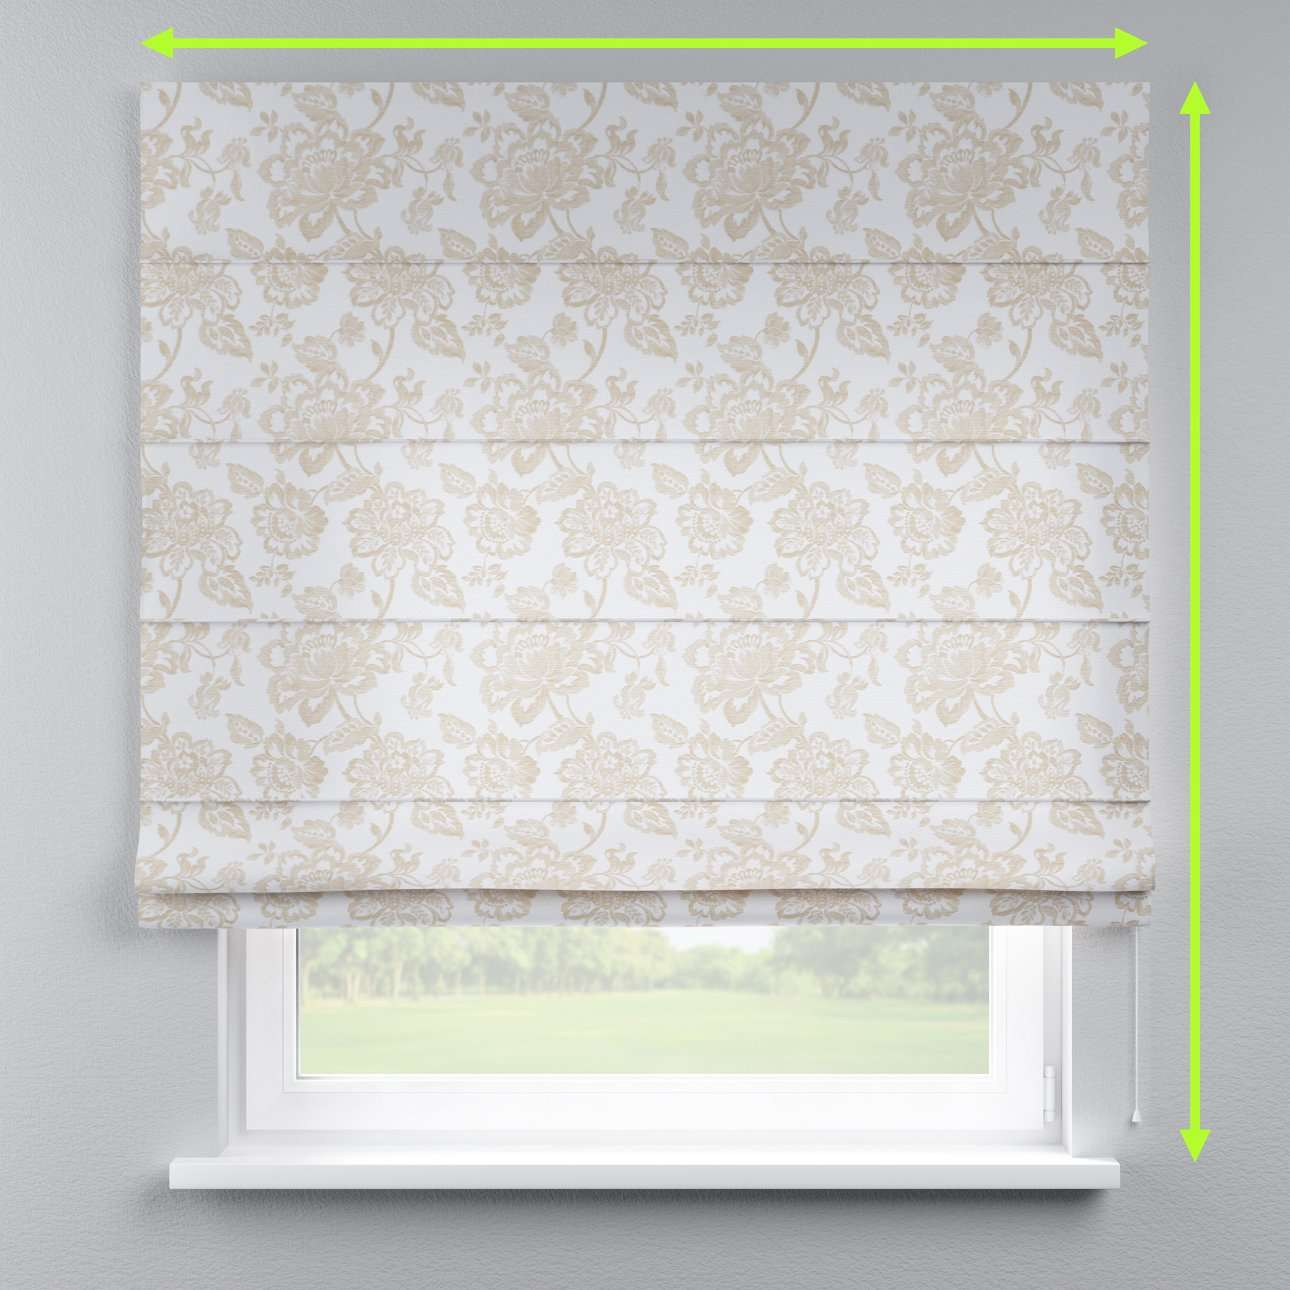 Capri roman blind in collection Rustica, fabric: 138-23